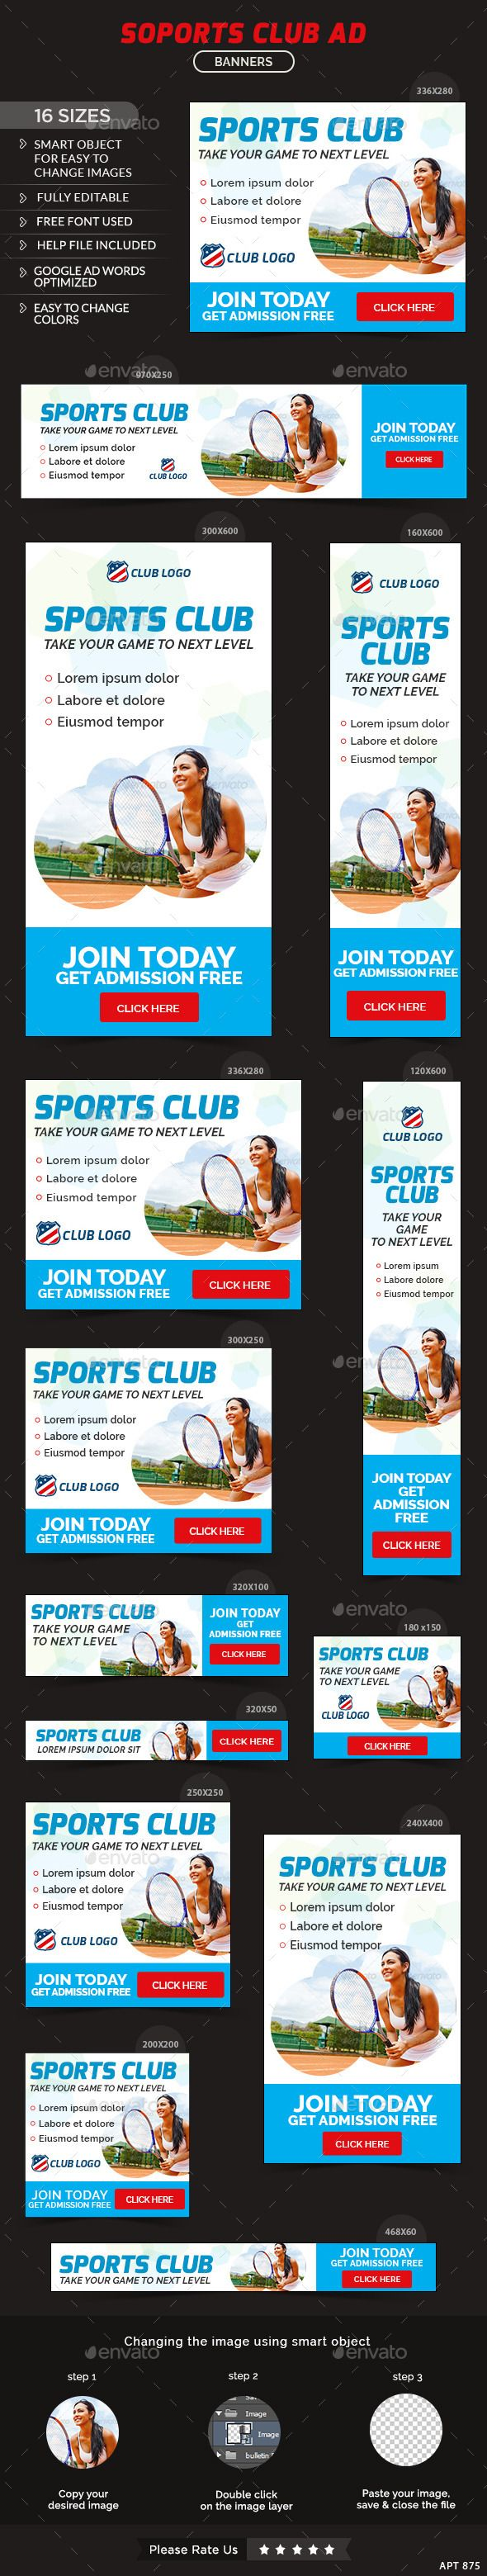 Sports Club Web Banners Template #design #ads Download: http://graphicriver.net/item/sports-club-banners/12802304?ref=ksioks